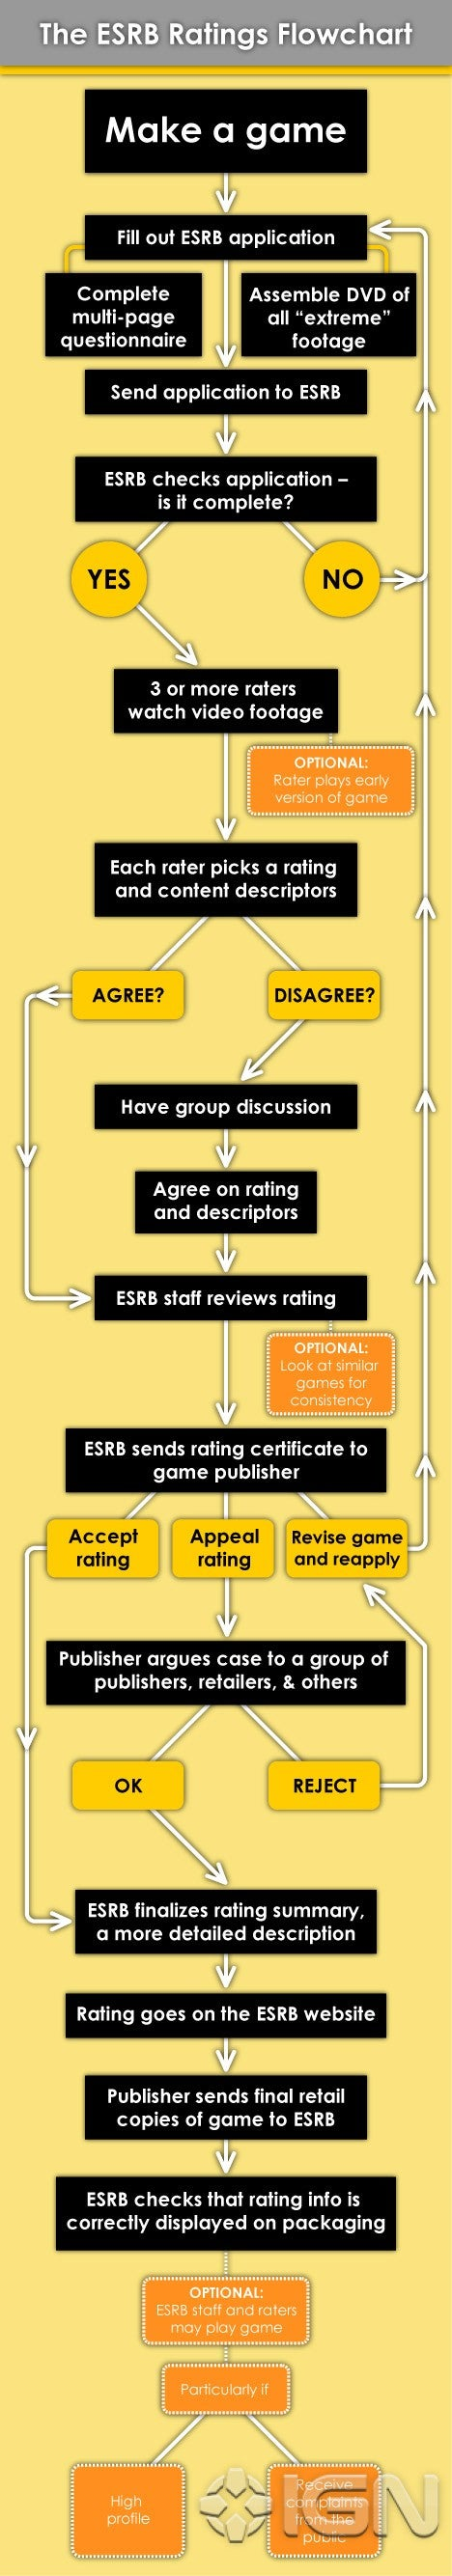 How ESRB Ratings Are Made!